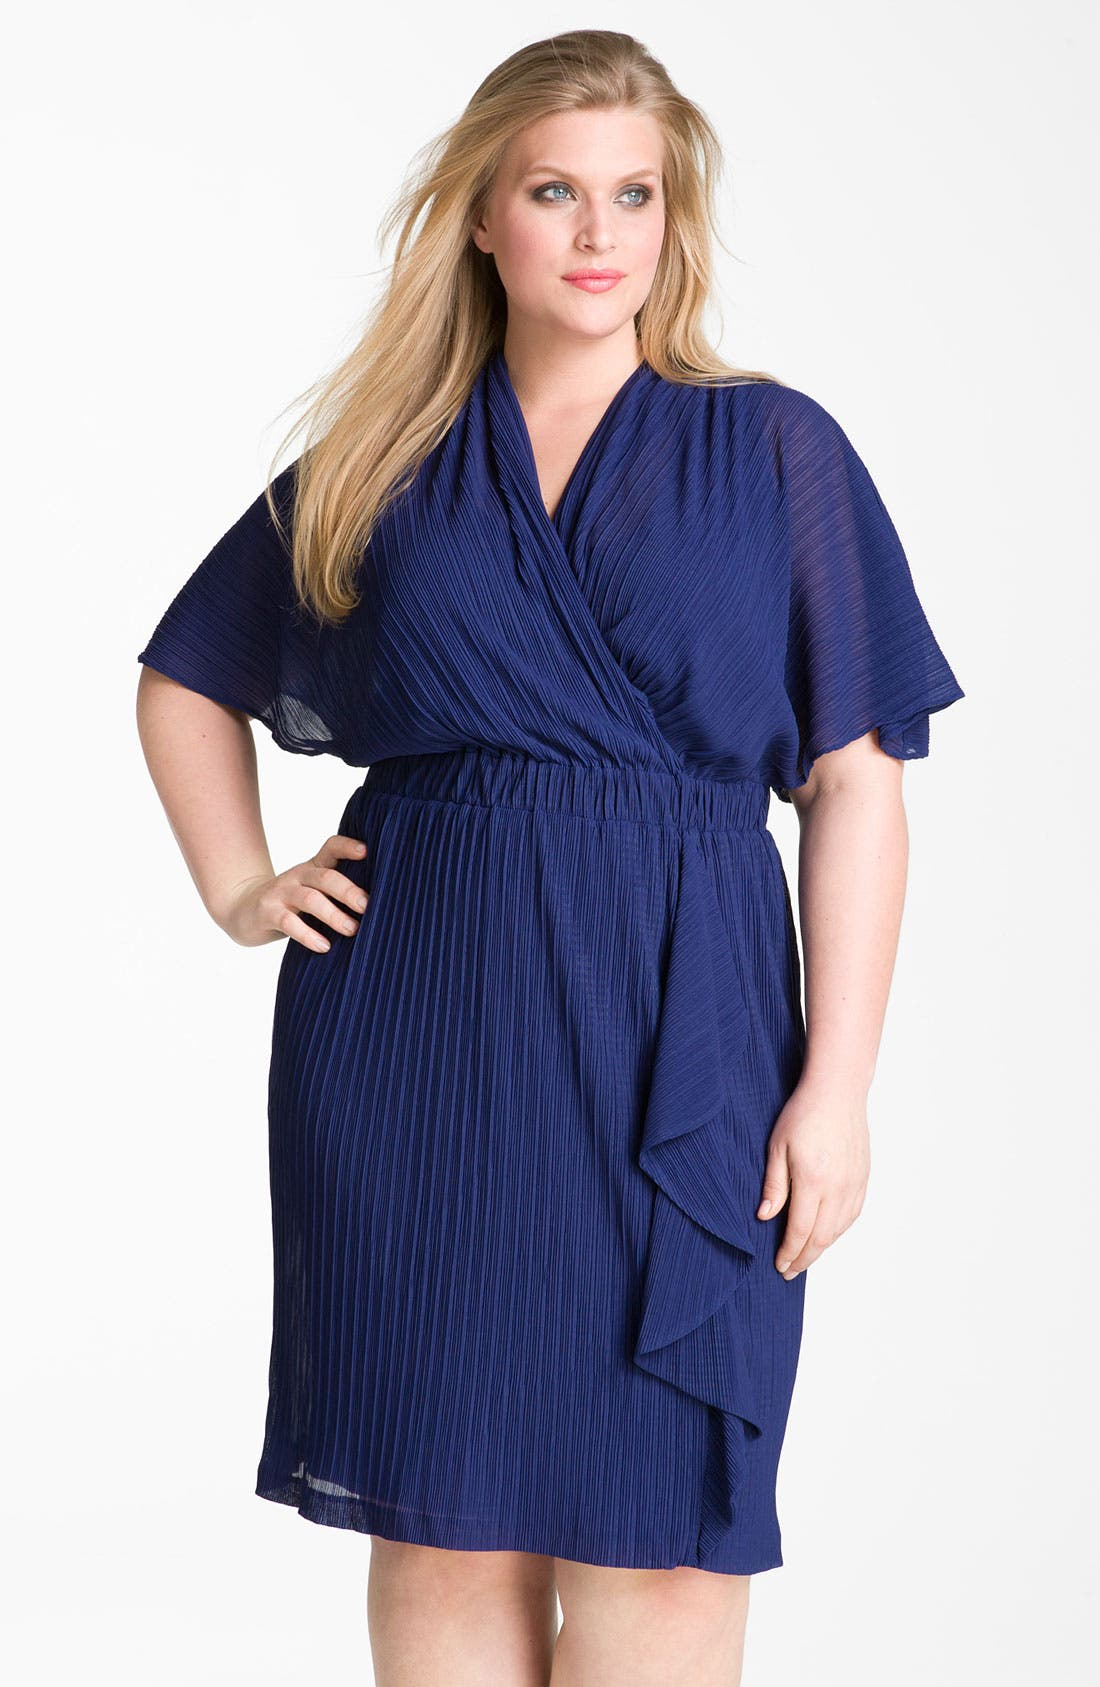 Alternate Image 1 Selected - Donna Ricco Ruffle Chiffon Dress (Plus Size)